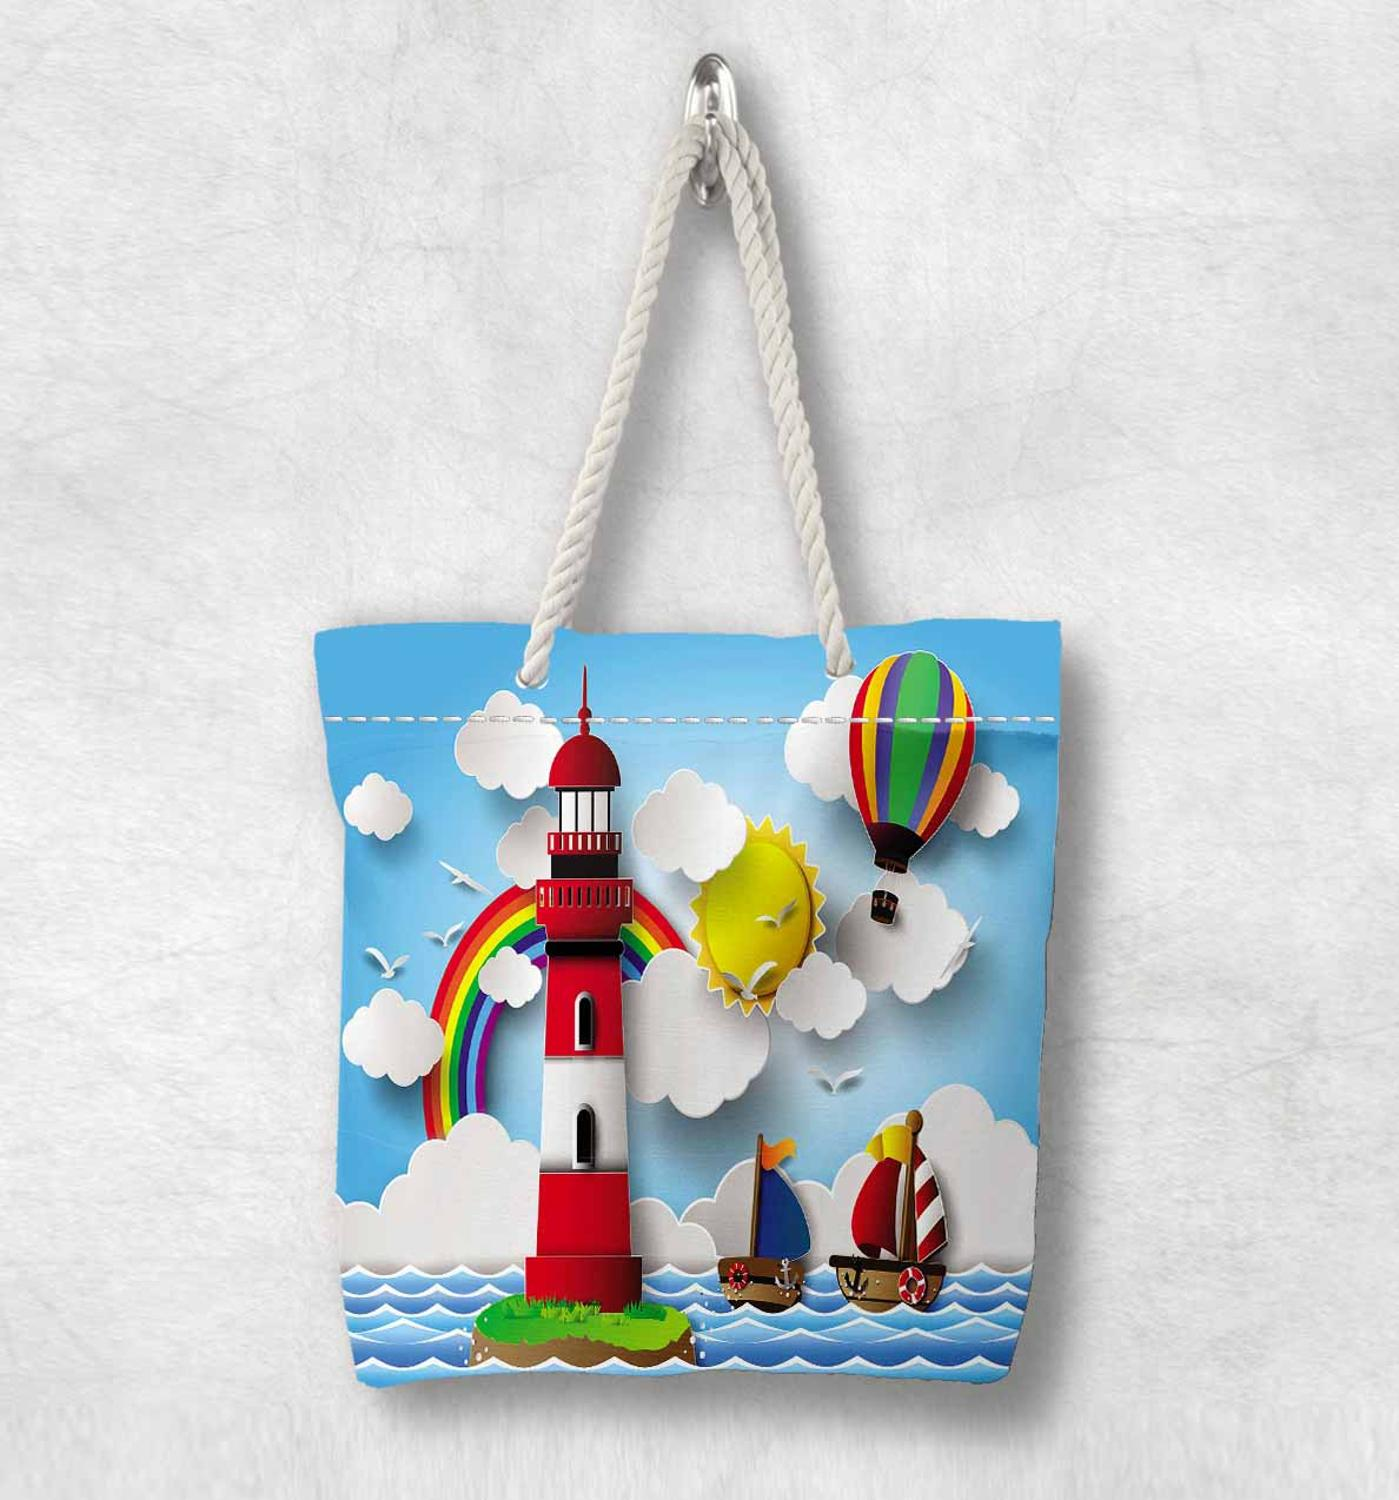 Else Blue Sea Ship Light House Rainbow Clouds Fashion White Rope Handle Canvas Bag  Cartoon Print Zippered Tote Bag Shoulder Bag